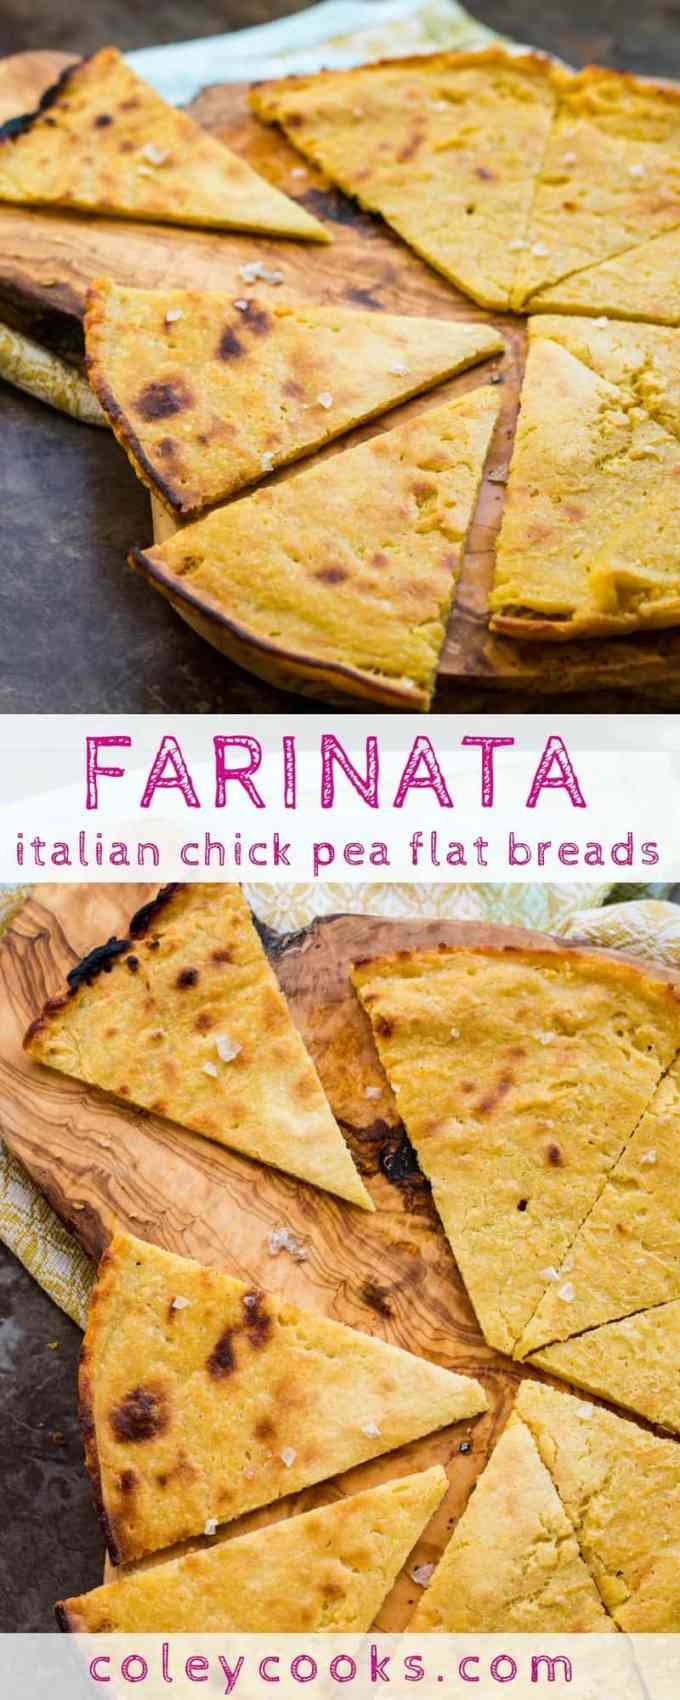 FARINATA / SOCCA | This easy recipe for Italian / French chick pea flatbread is vegan, gluten free, and super delicious! Crispy outside with creamy interior. Makes a great pizza base! #glutenfree #vegan | ColeyCooks.com